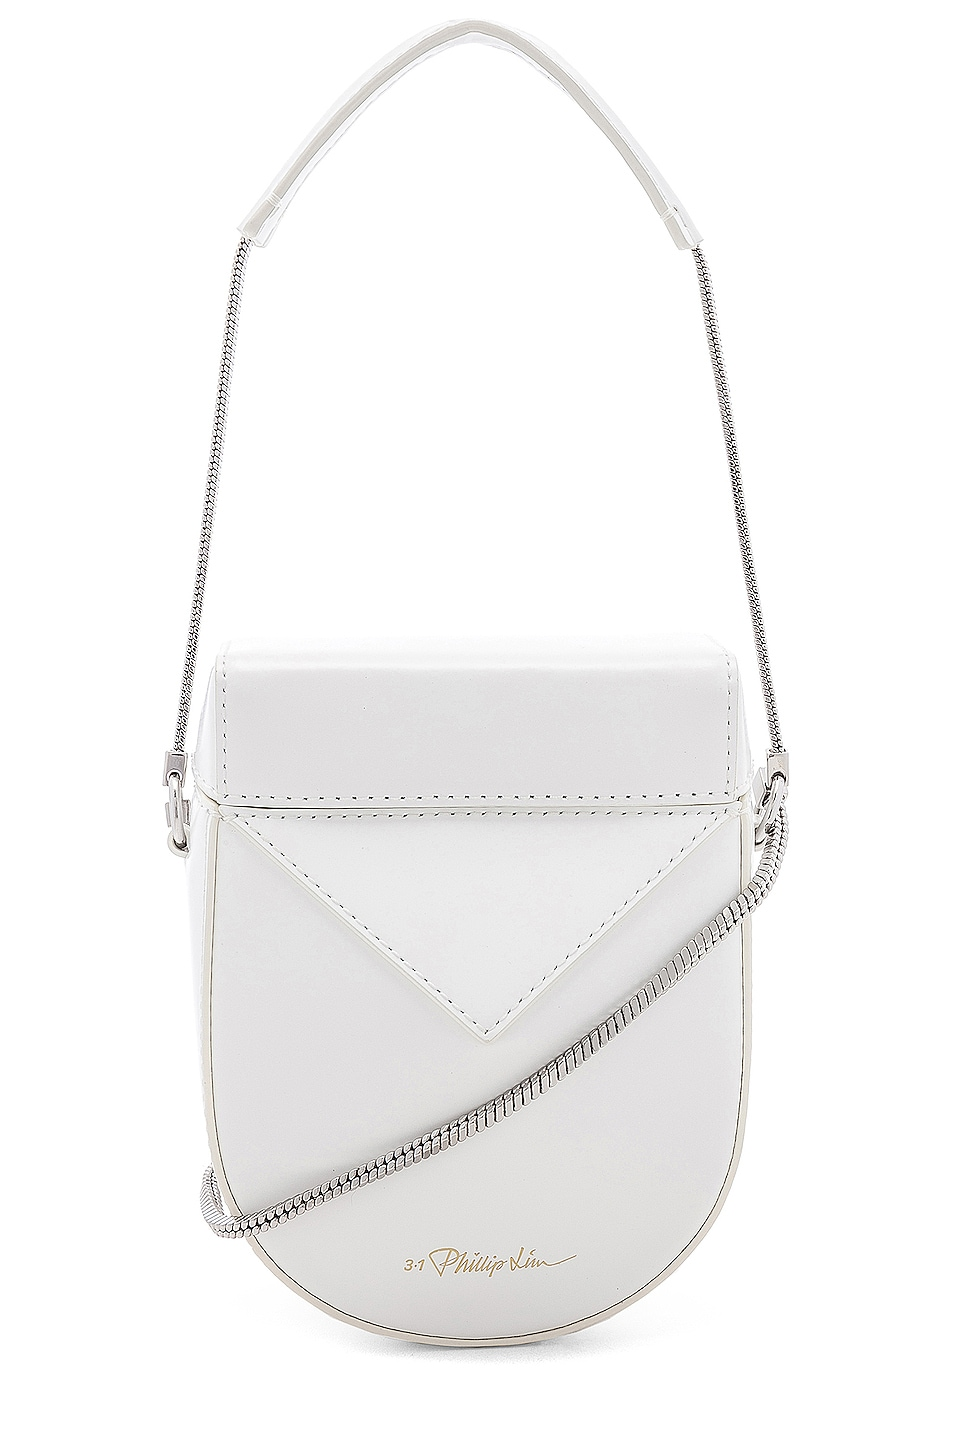 3.1 phillip lim Soleil Mini Case Bag in White